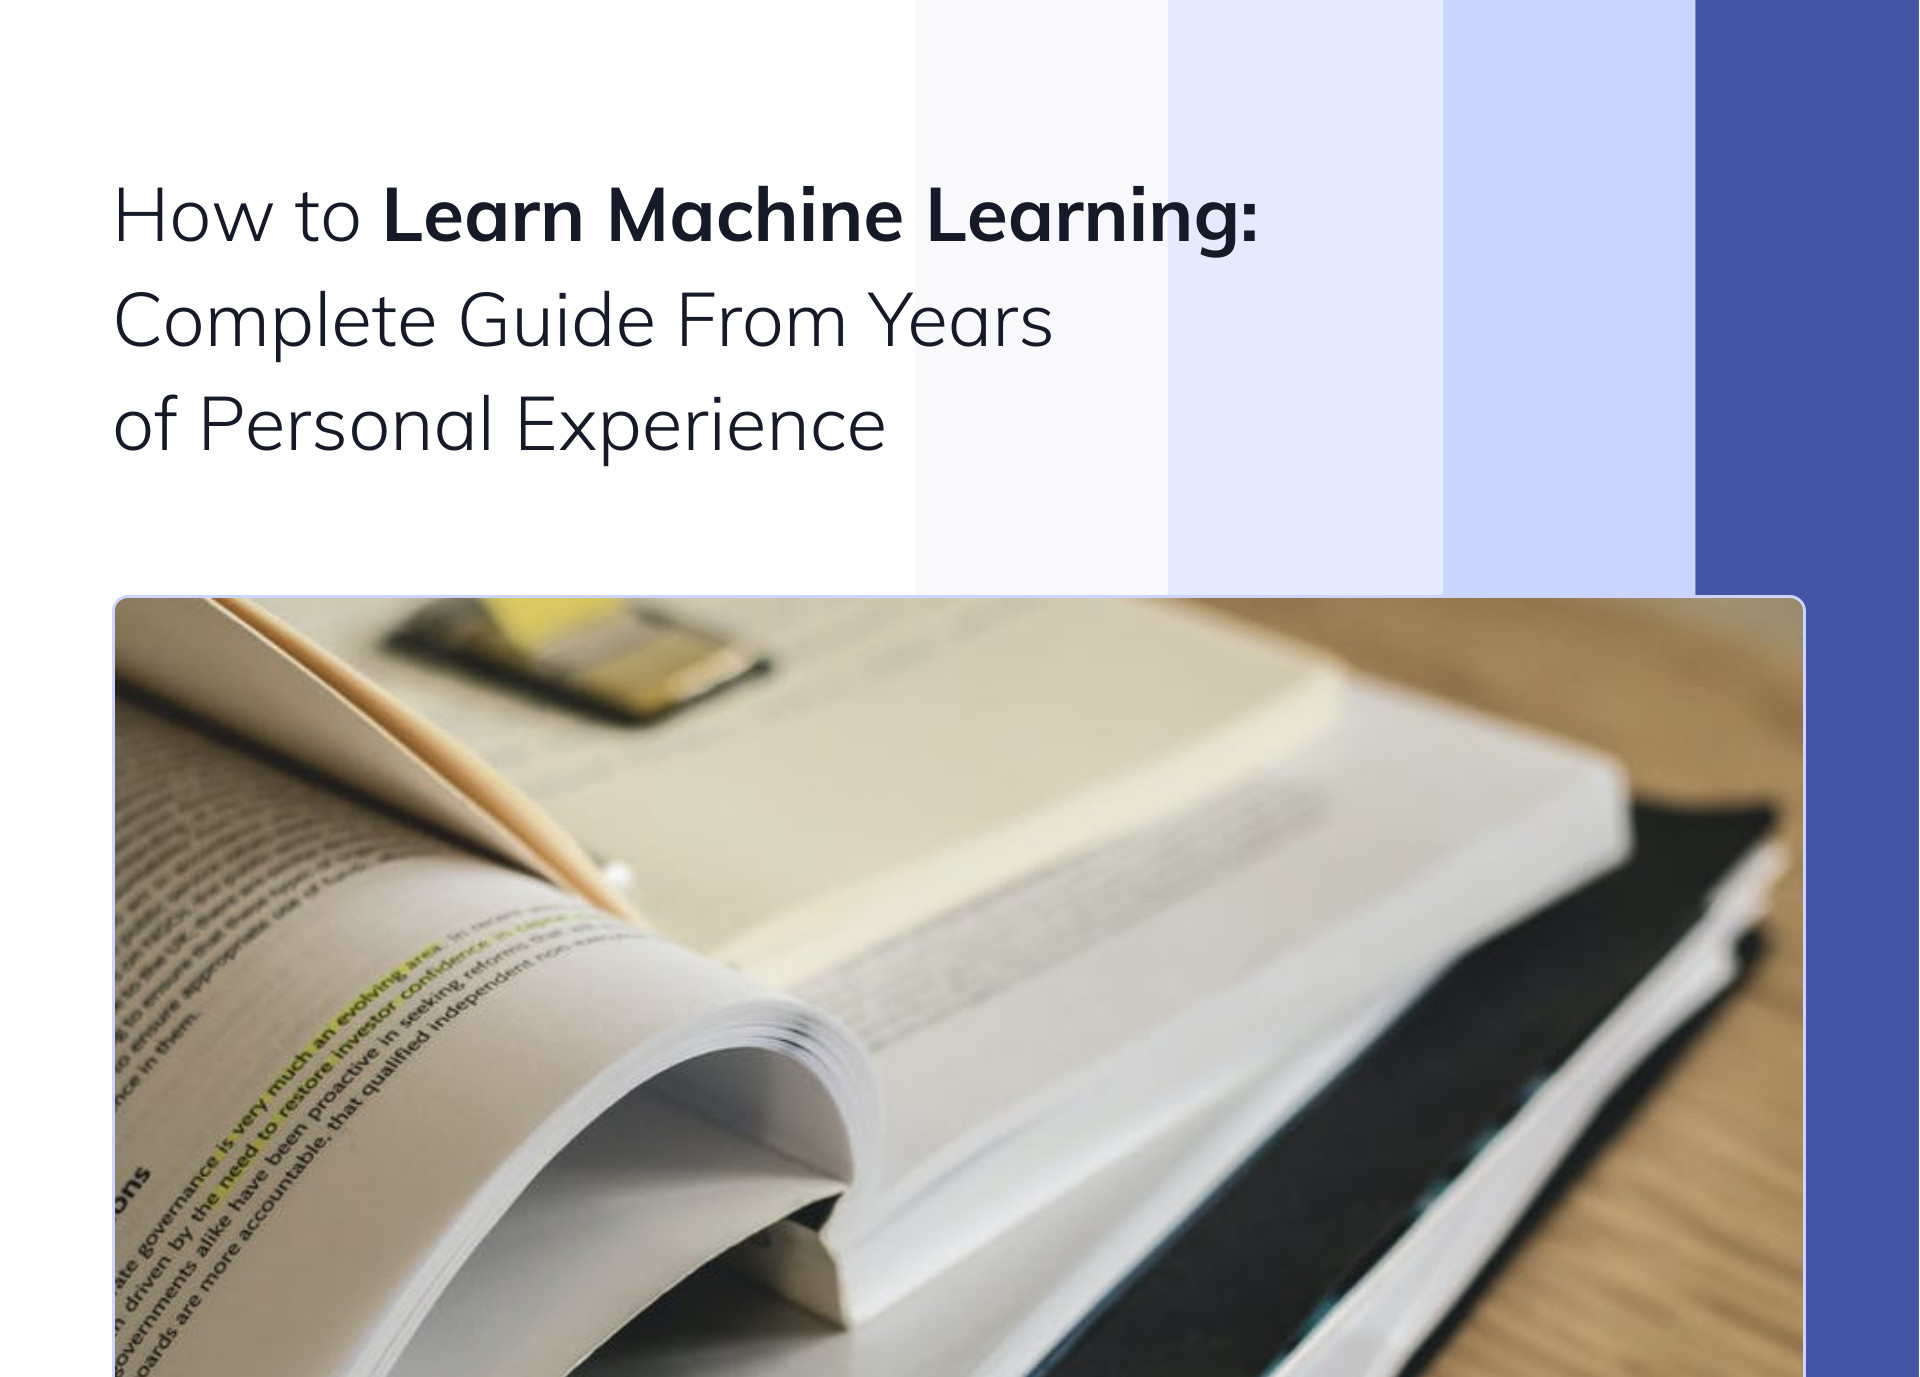 How to Learn Machine Learning: Complete Guide From Years of Personal Experience